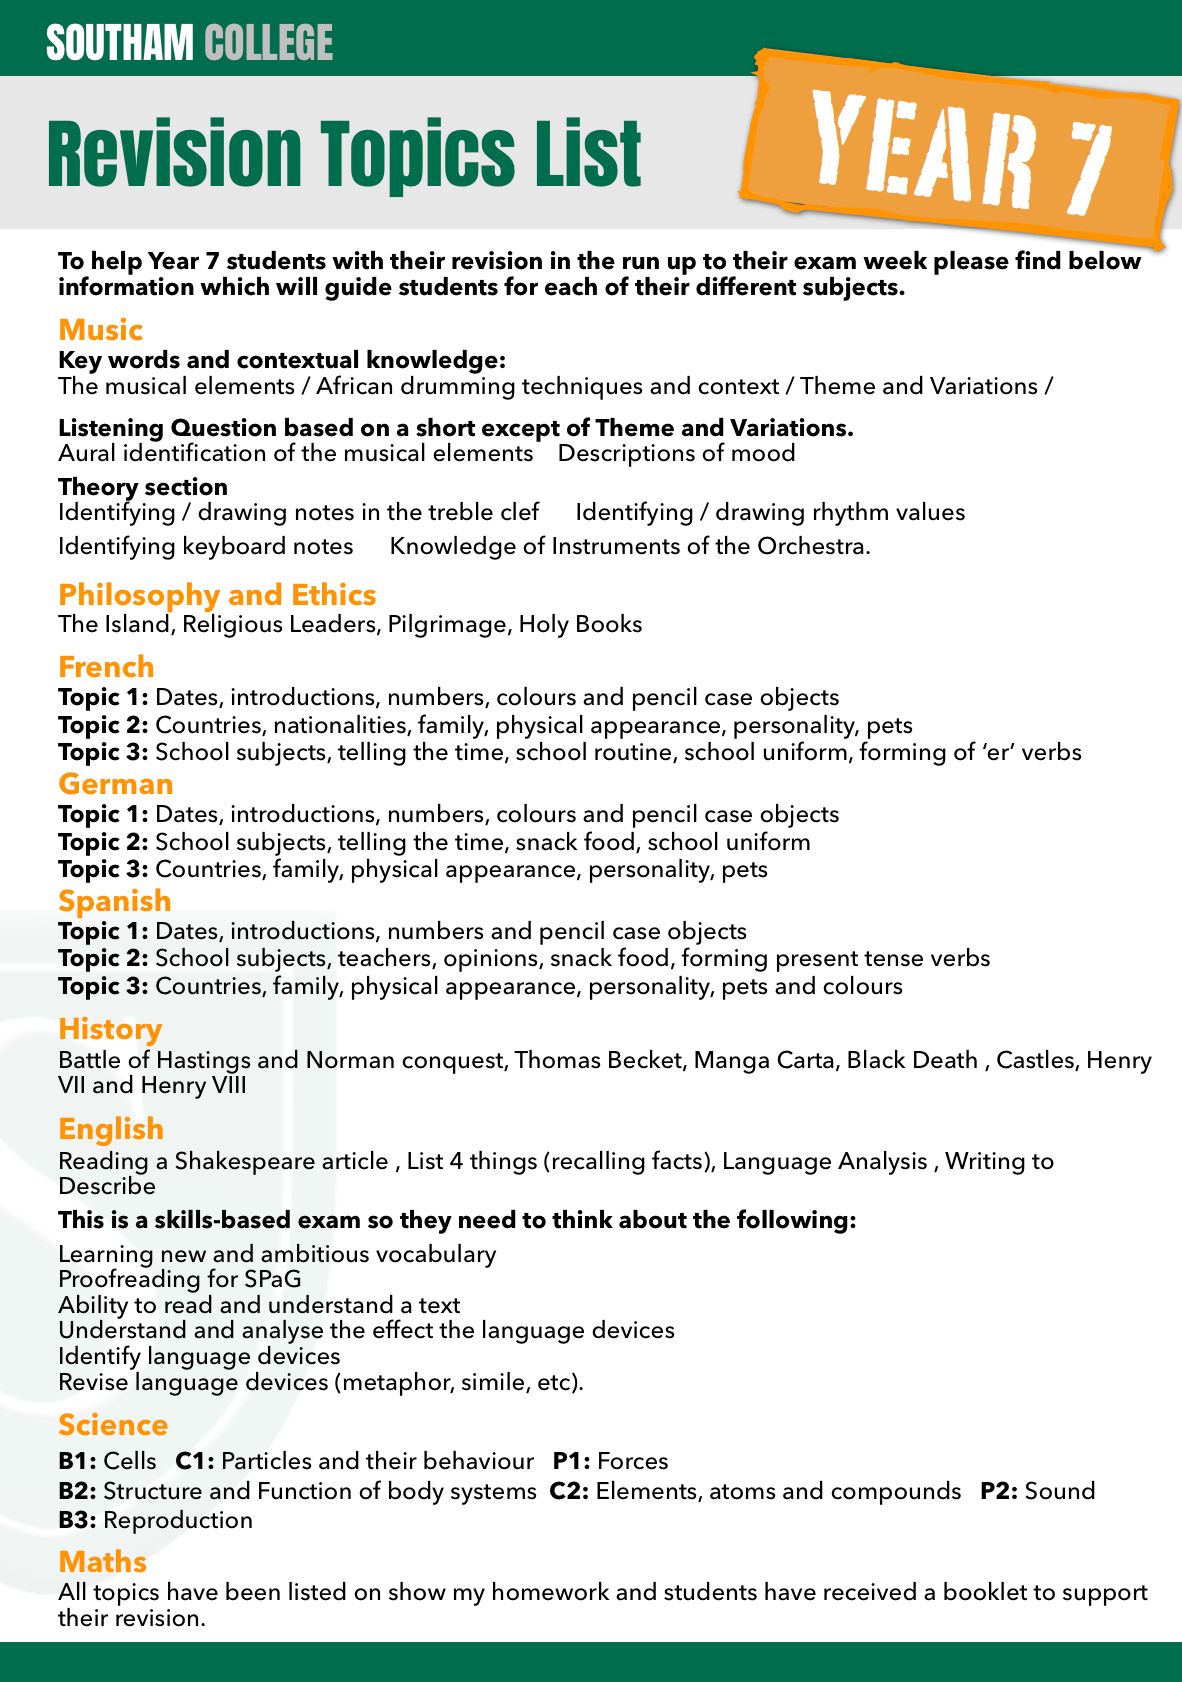 Year 7 Revision Topic List For All Subjects